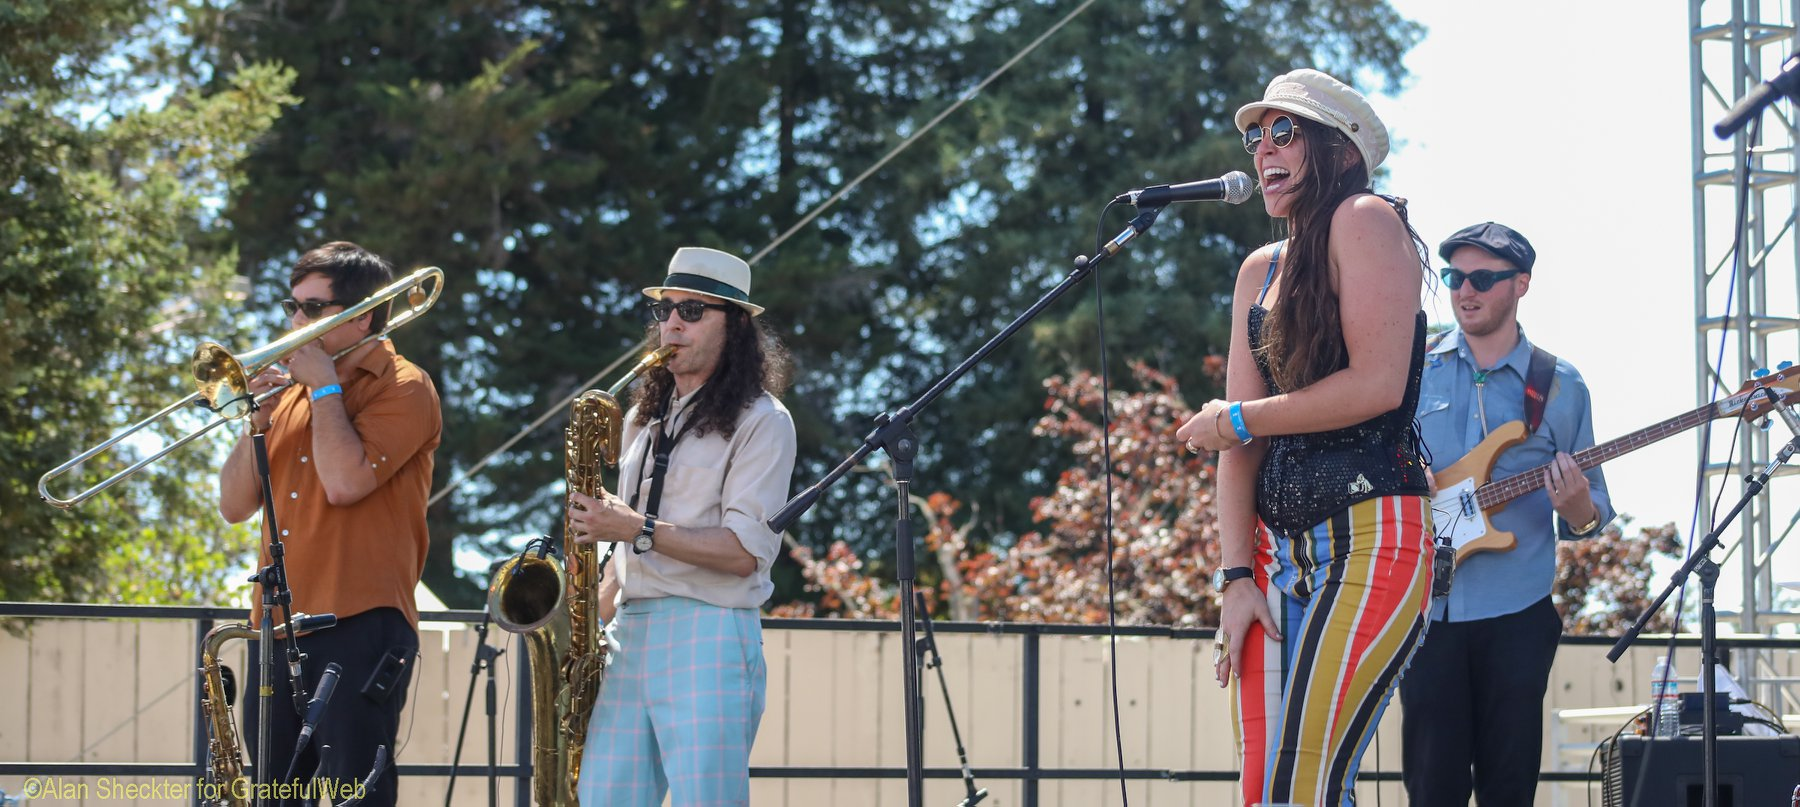 Royal Jelly Jive | Petaluma Music Festival